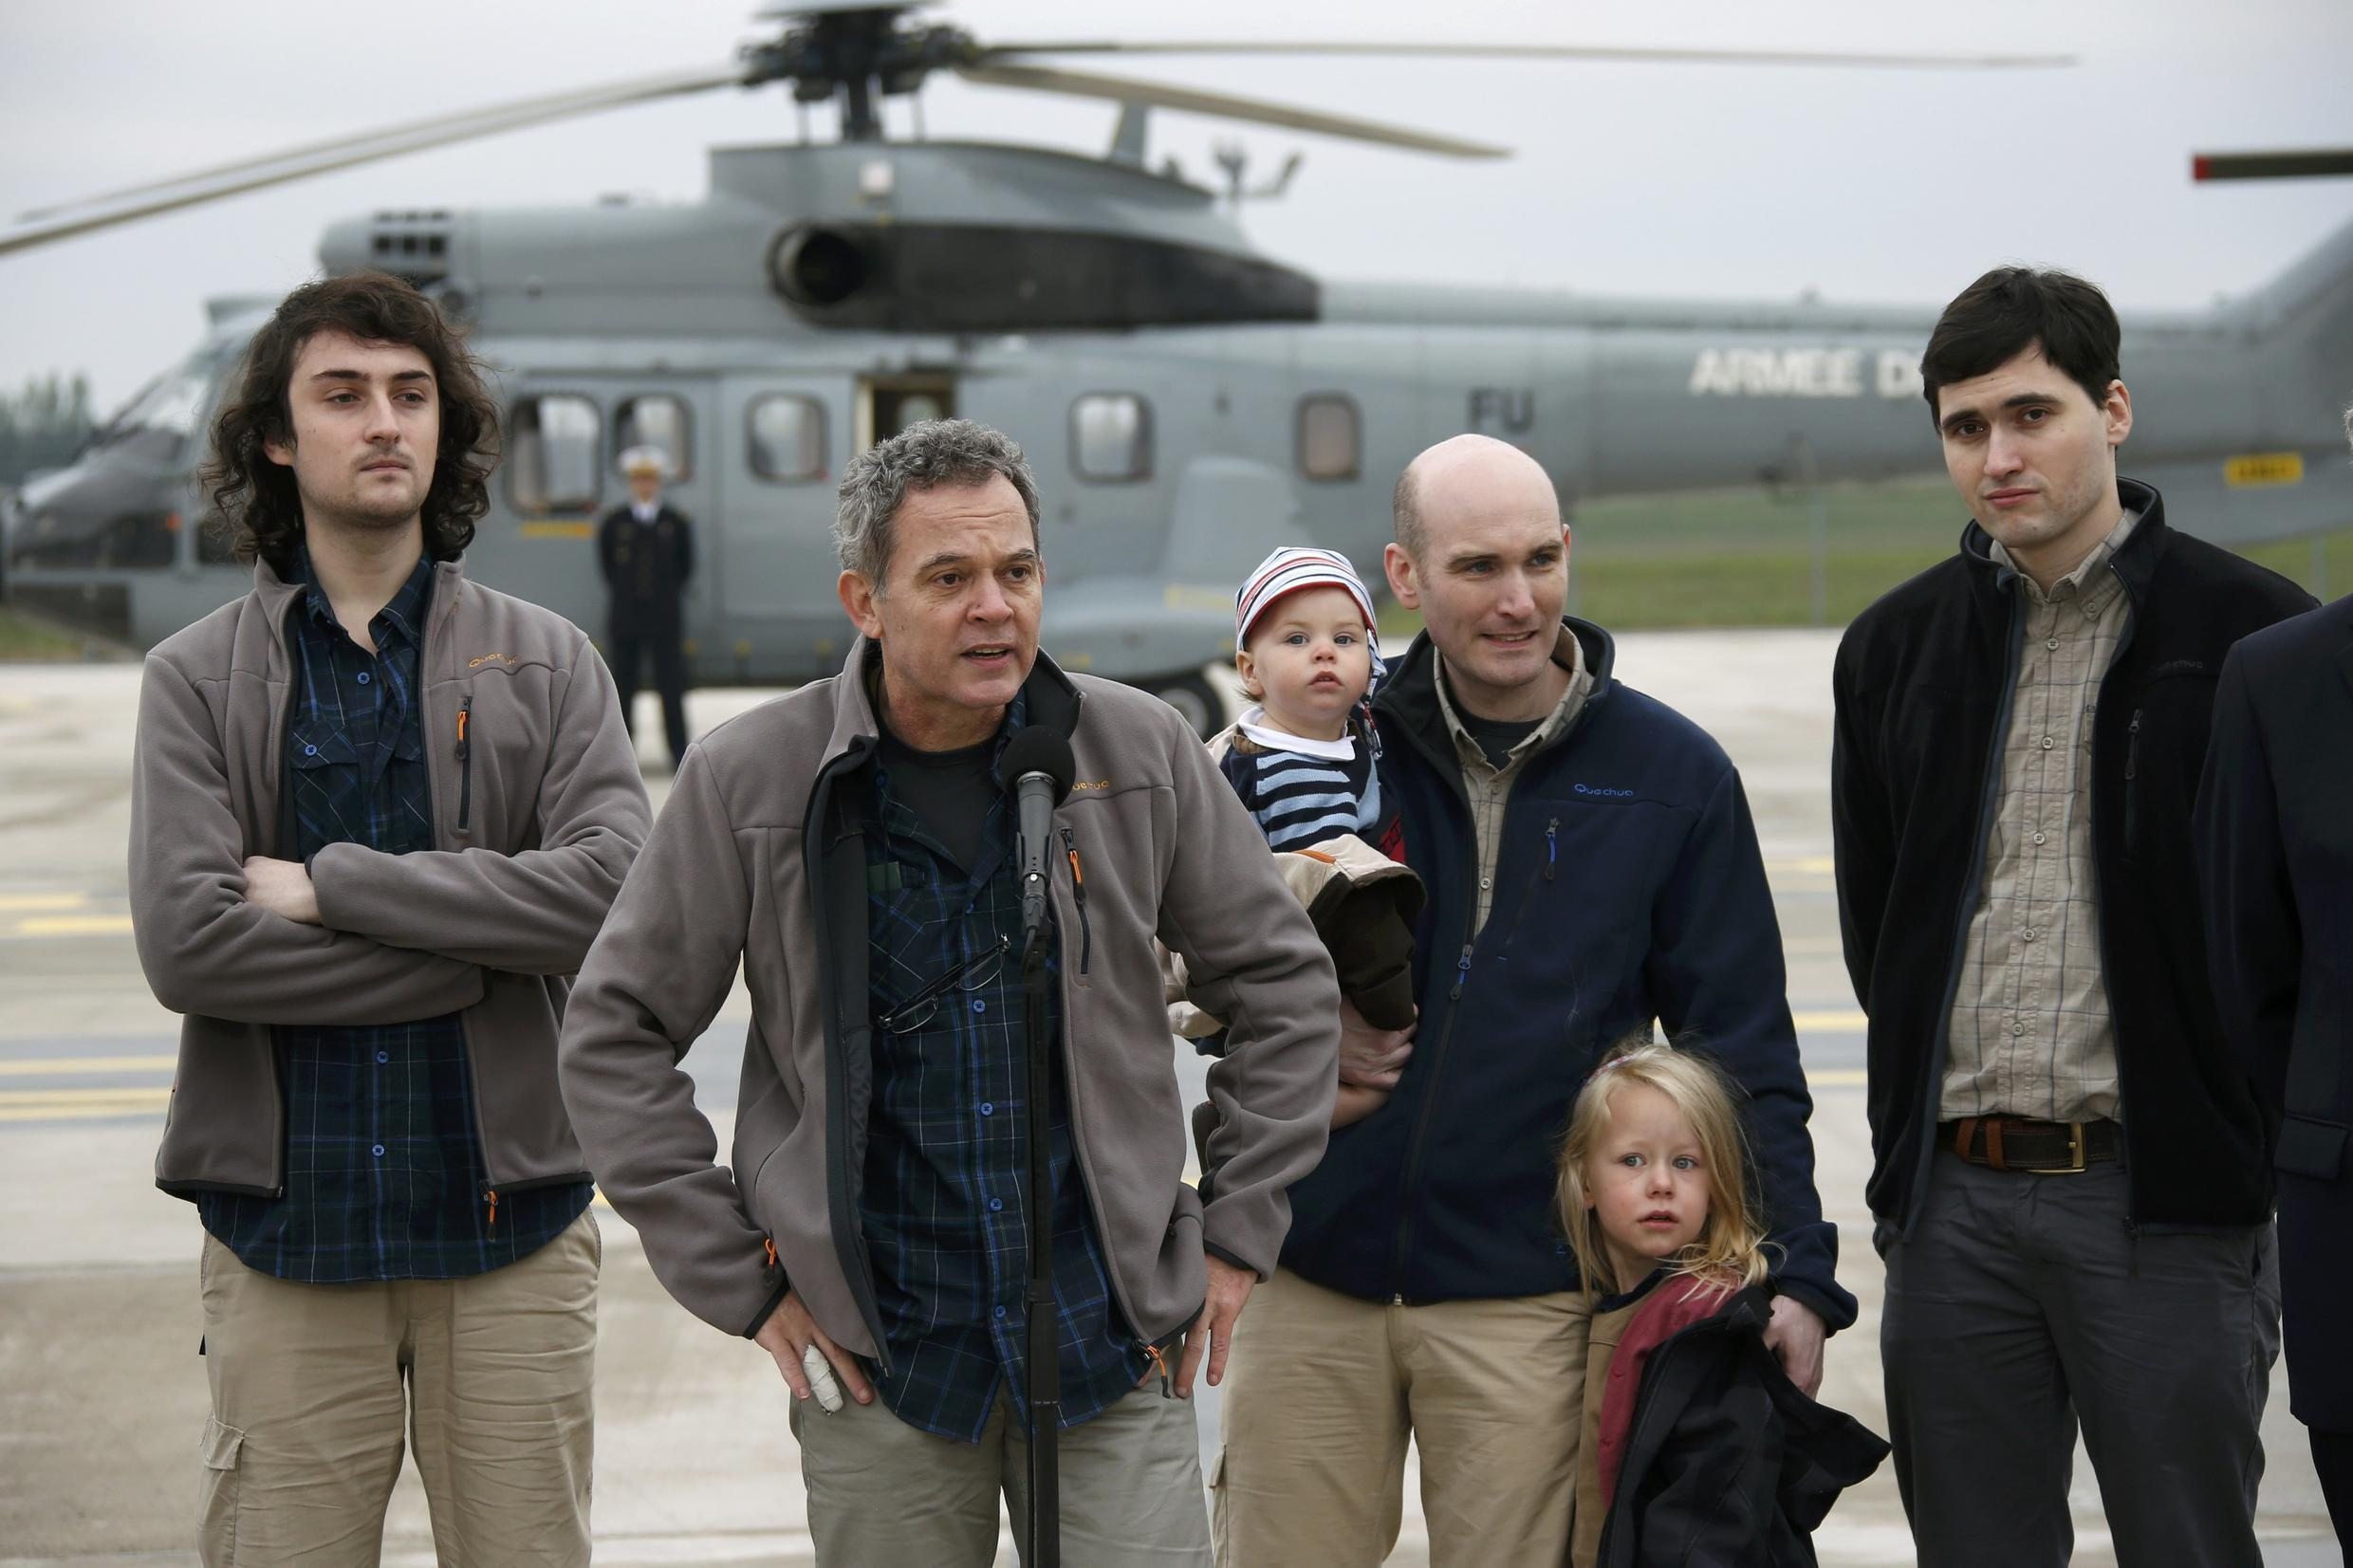 The four French journalists released from captivity arrive back in France (l-r) Edouard Elias, Didier François, Nicolas Hénin and Pierre Torres